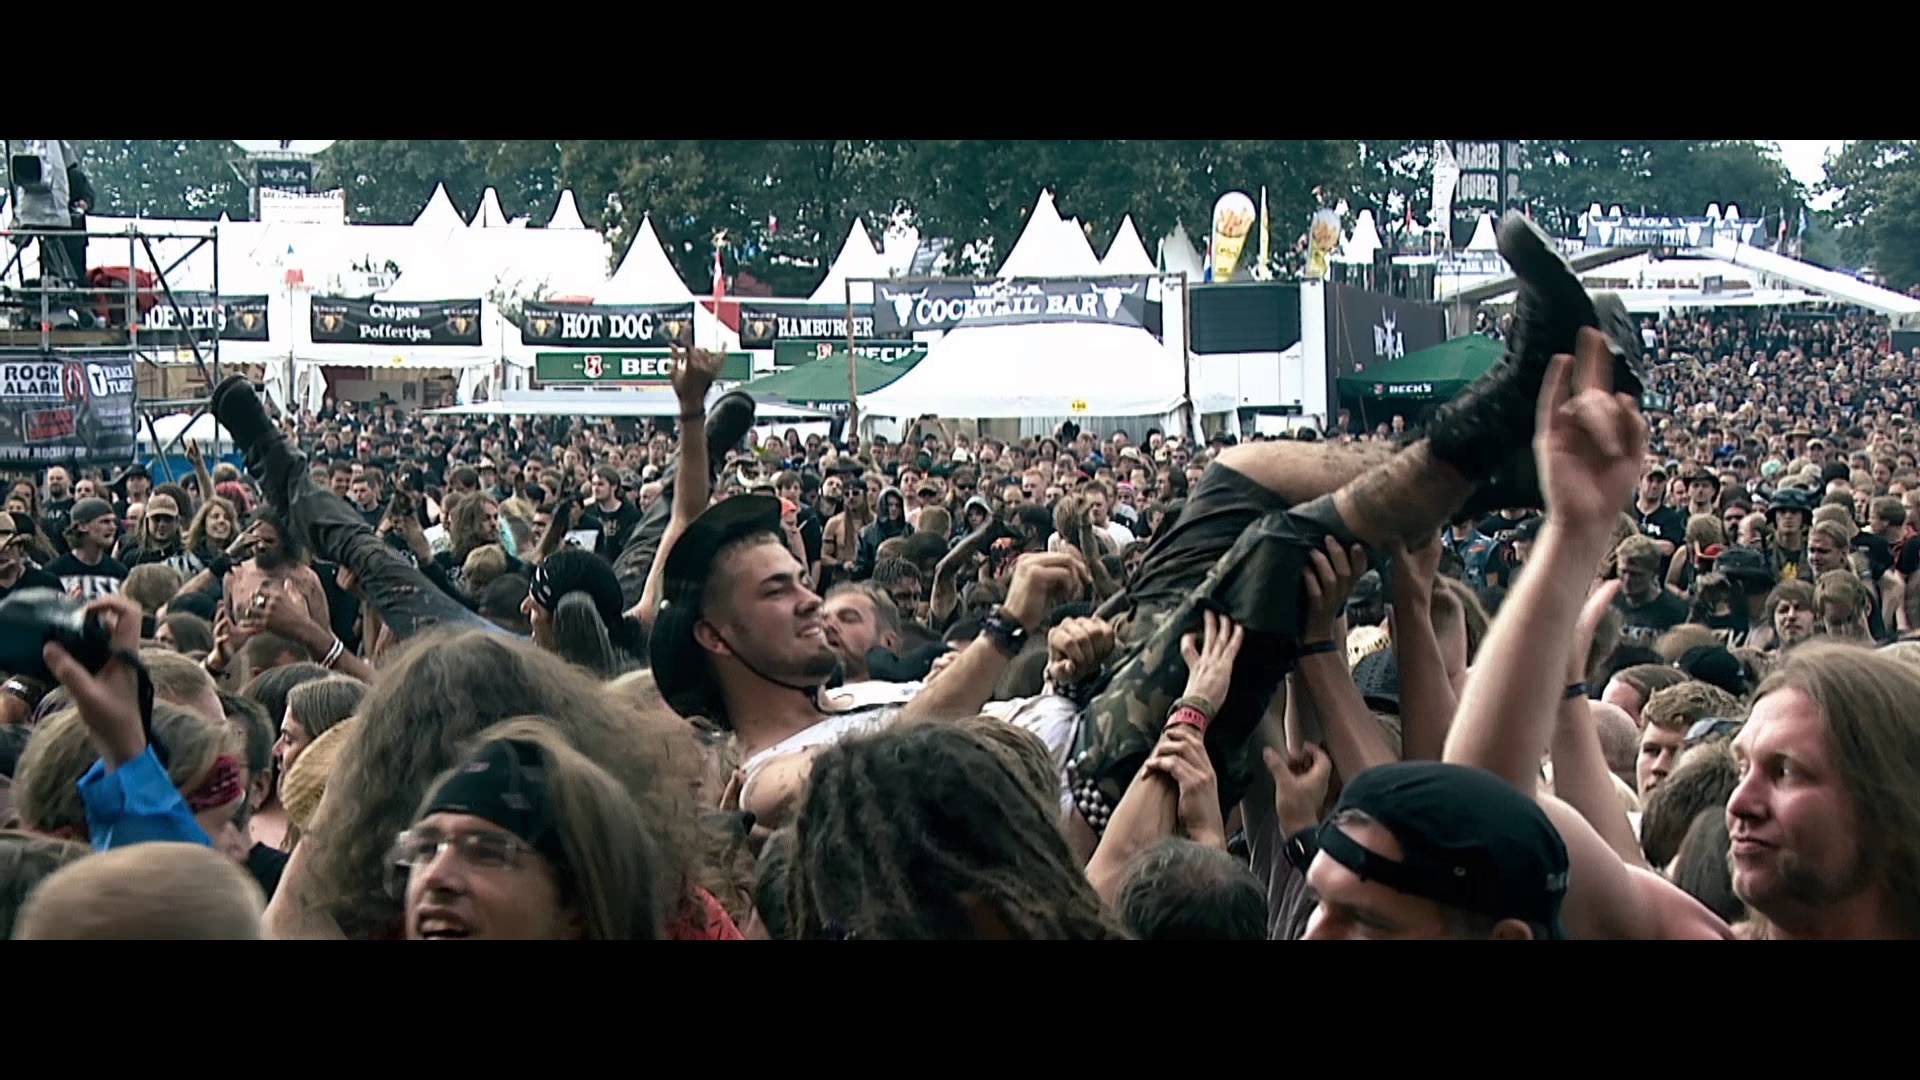 WACKEN 3D - Teaser 4 - CURTAIN